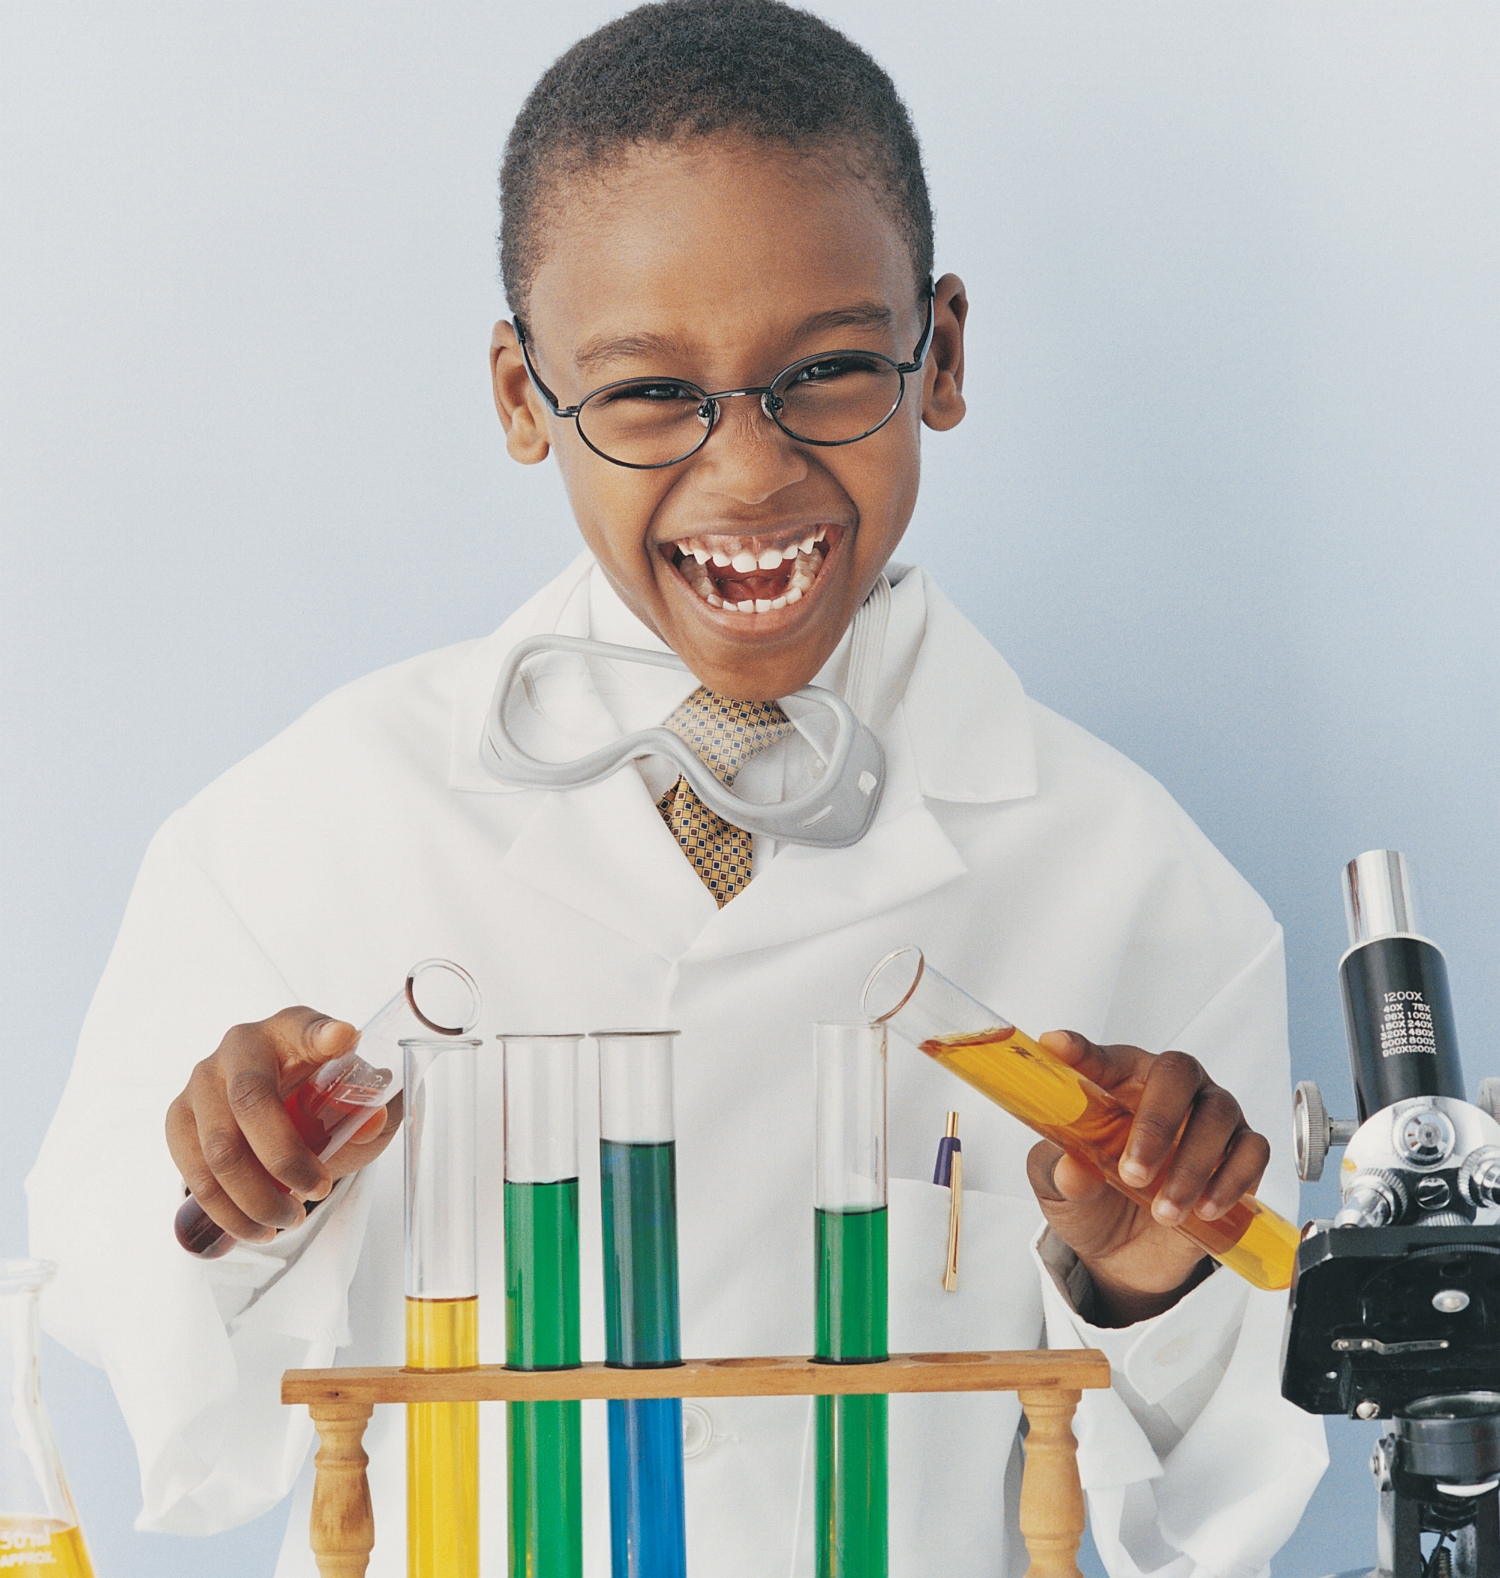 Science comes alive with The FiLS Program!